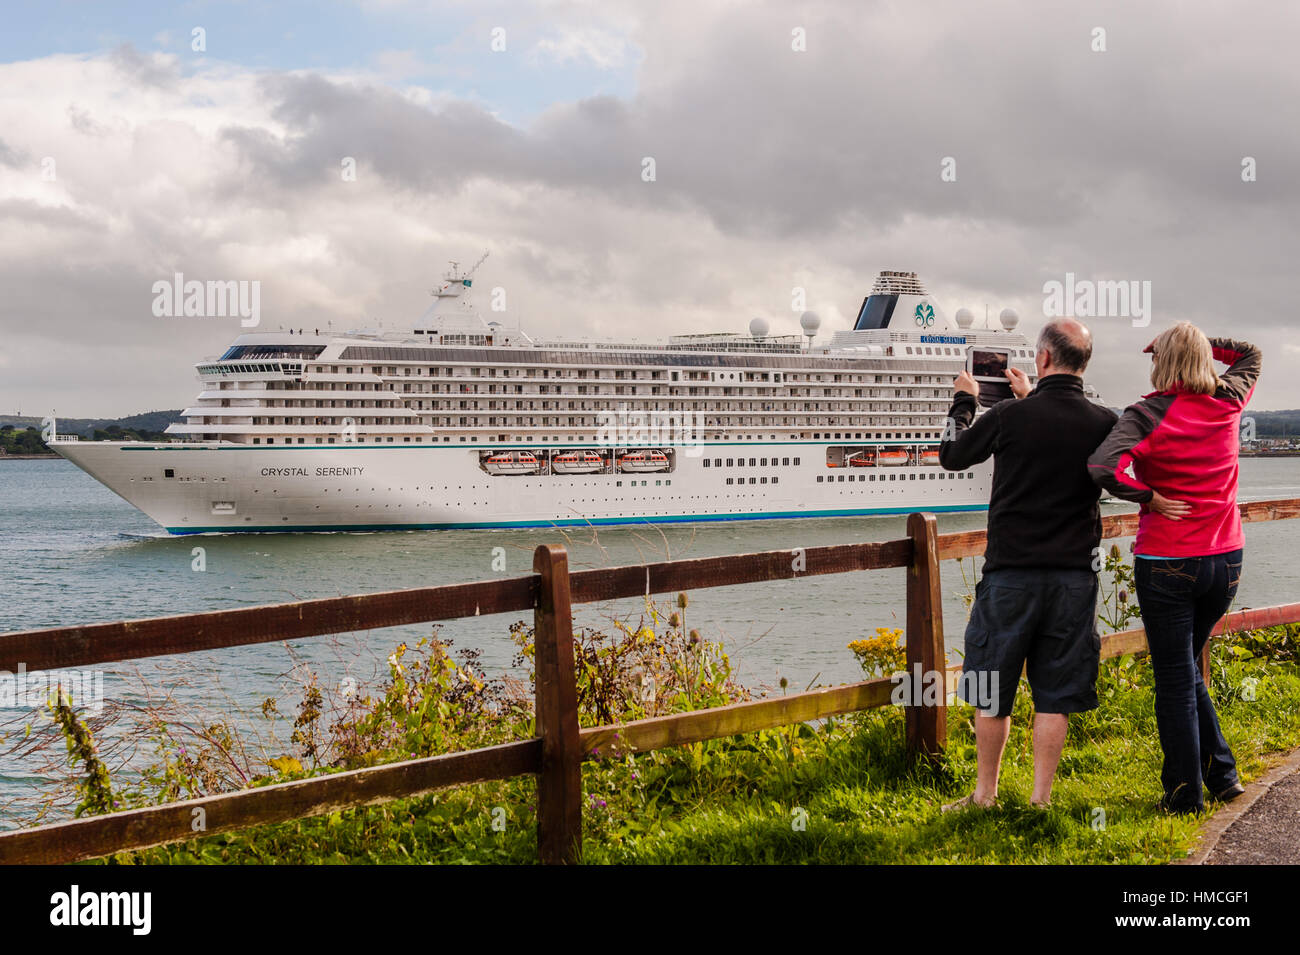 Man and woman watch and film the cruise ship Crystal Serenity depart from Cobh, Ireland with copy space. - Stock Image